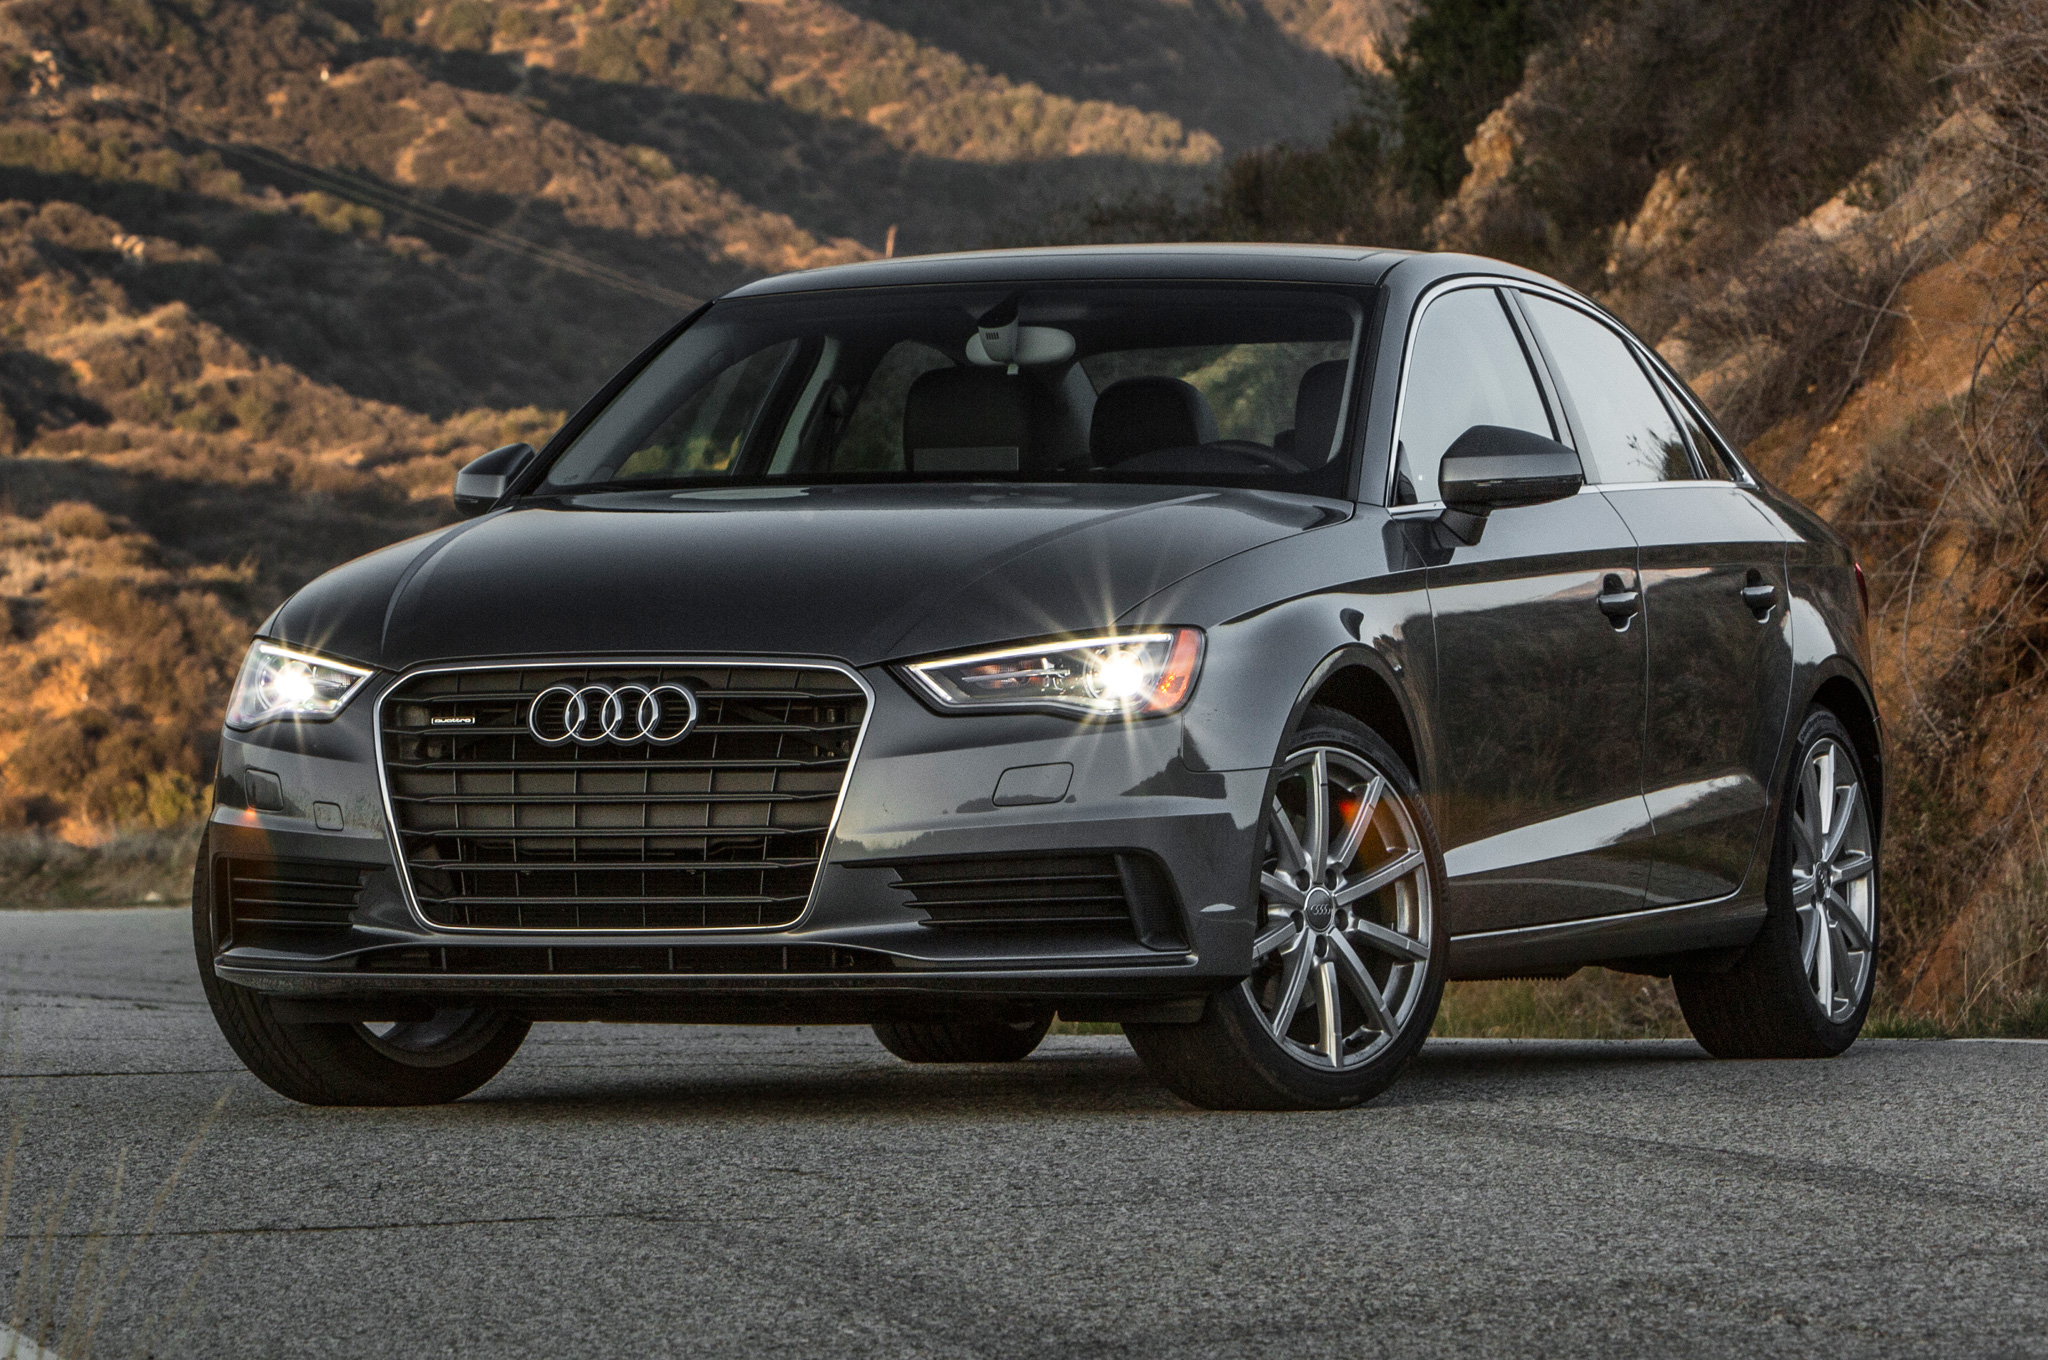 review of audi expert vehicle used